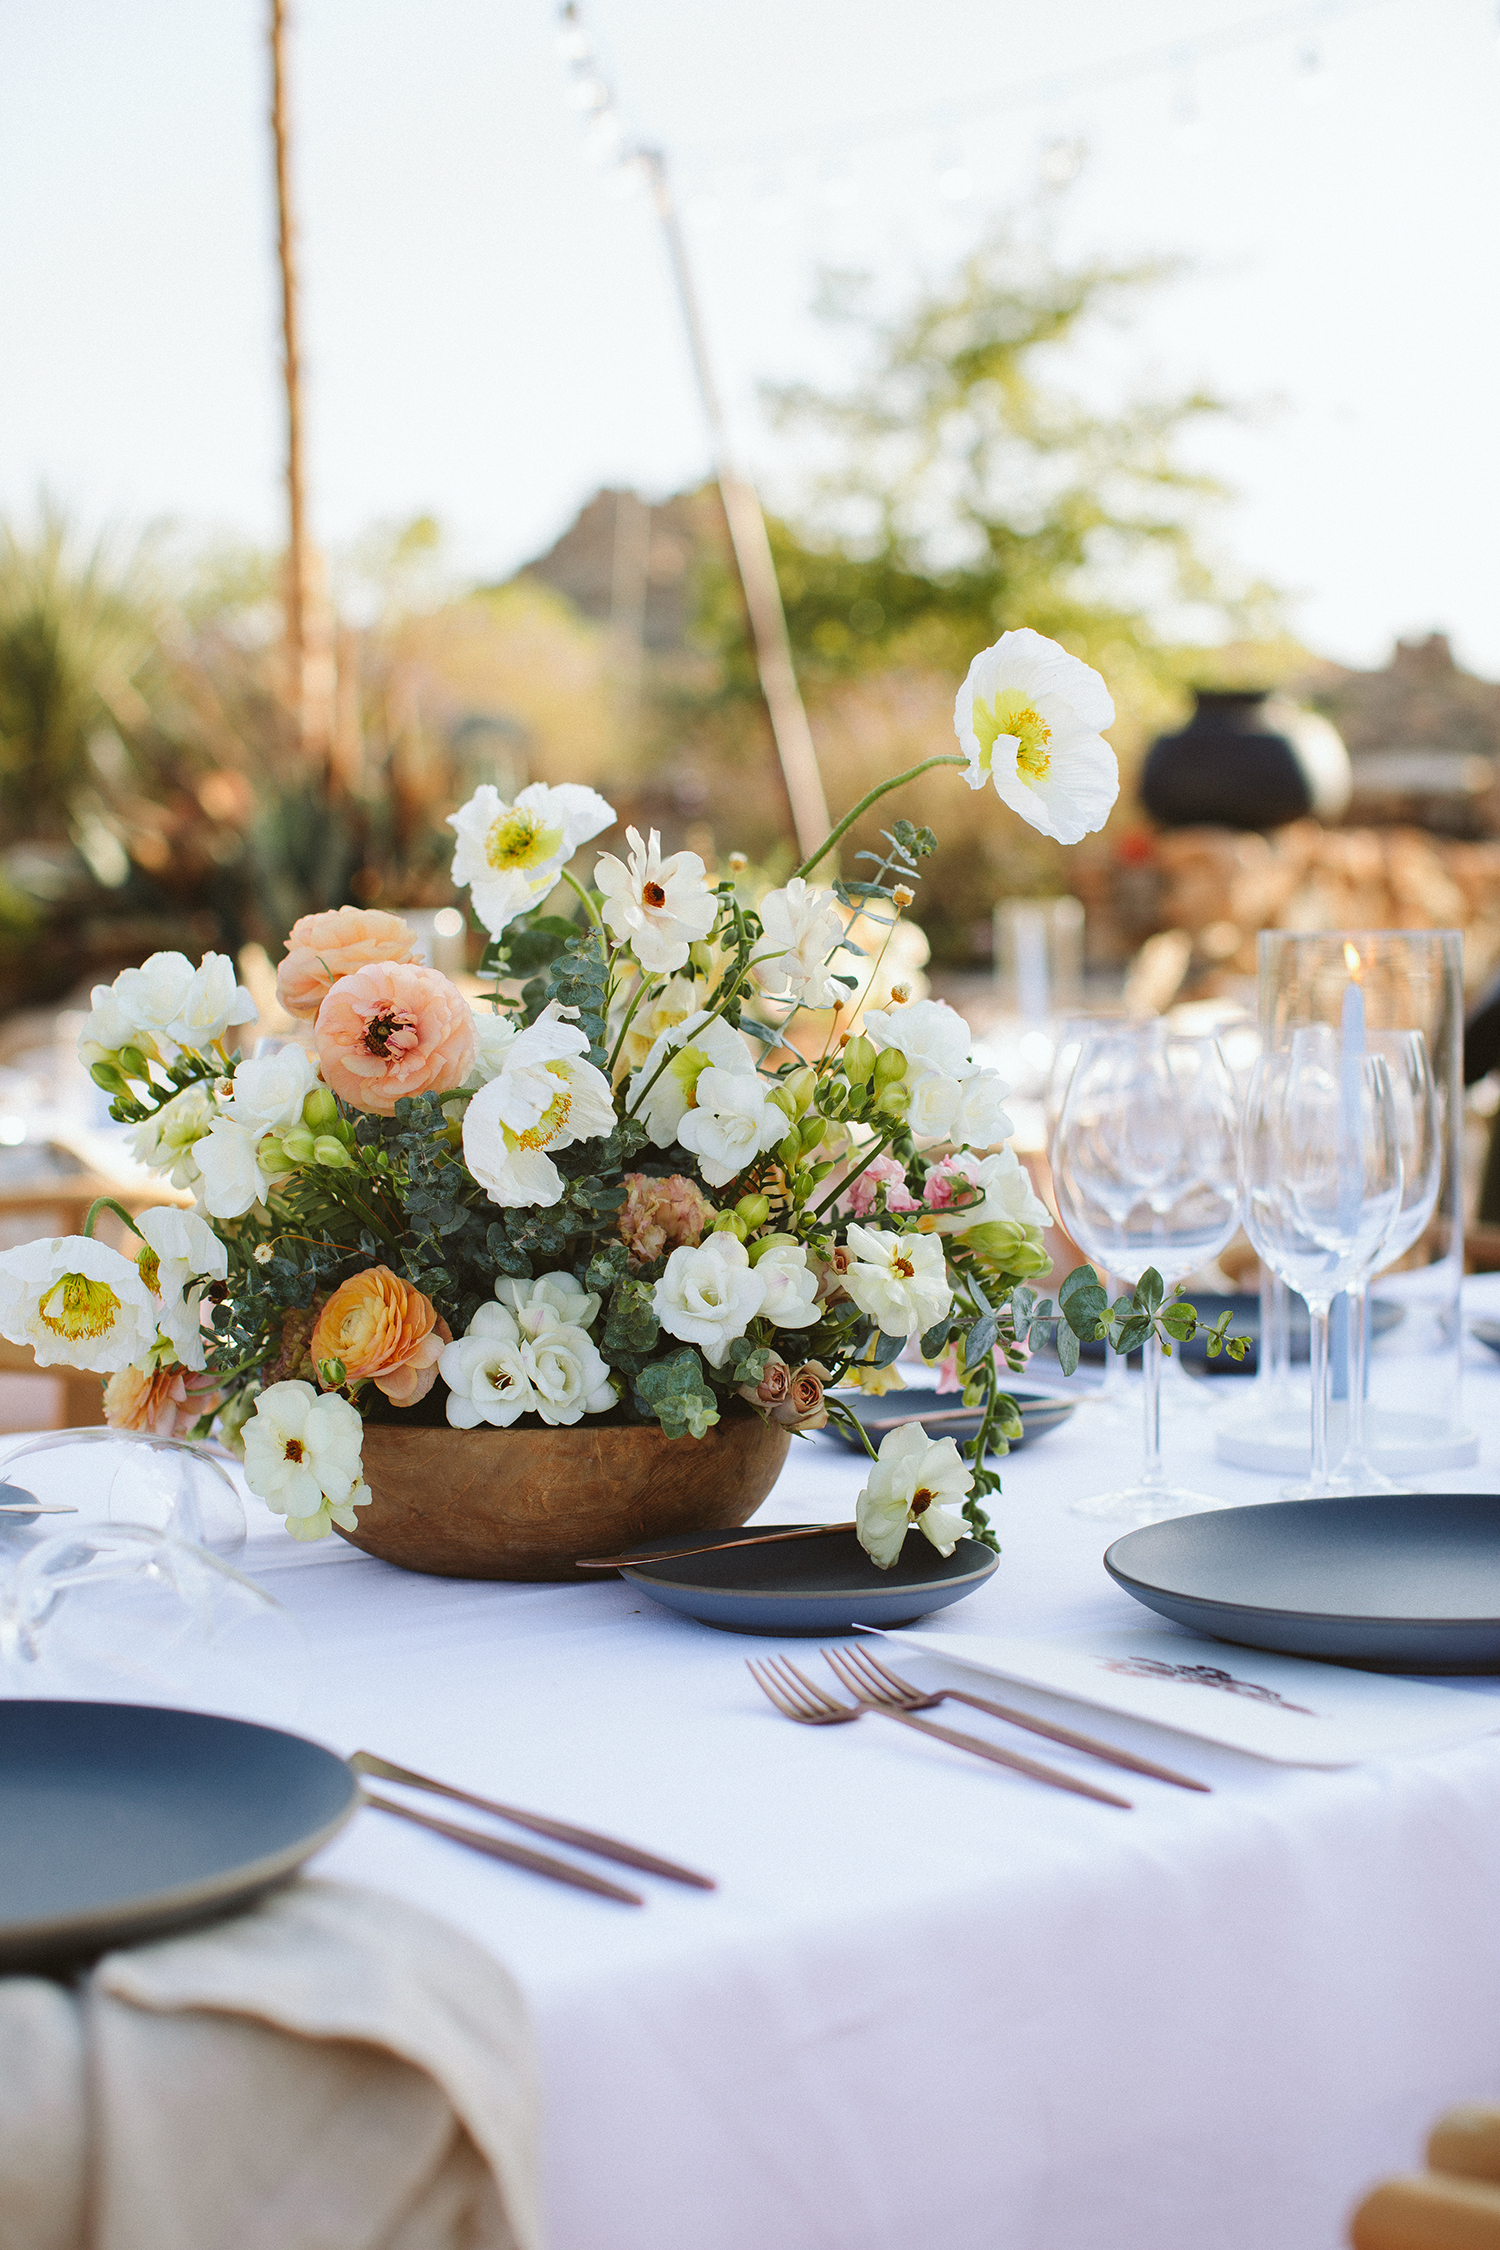 Why Are Wedding Centerpieces So Expensive?